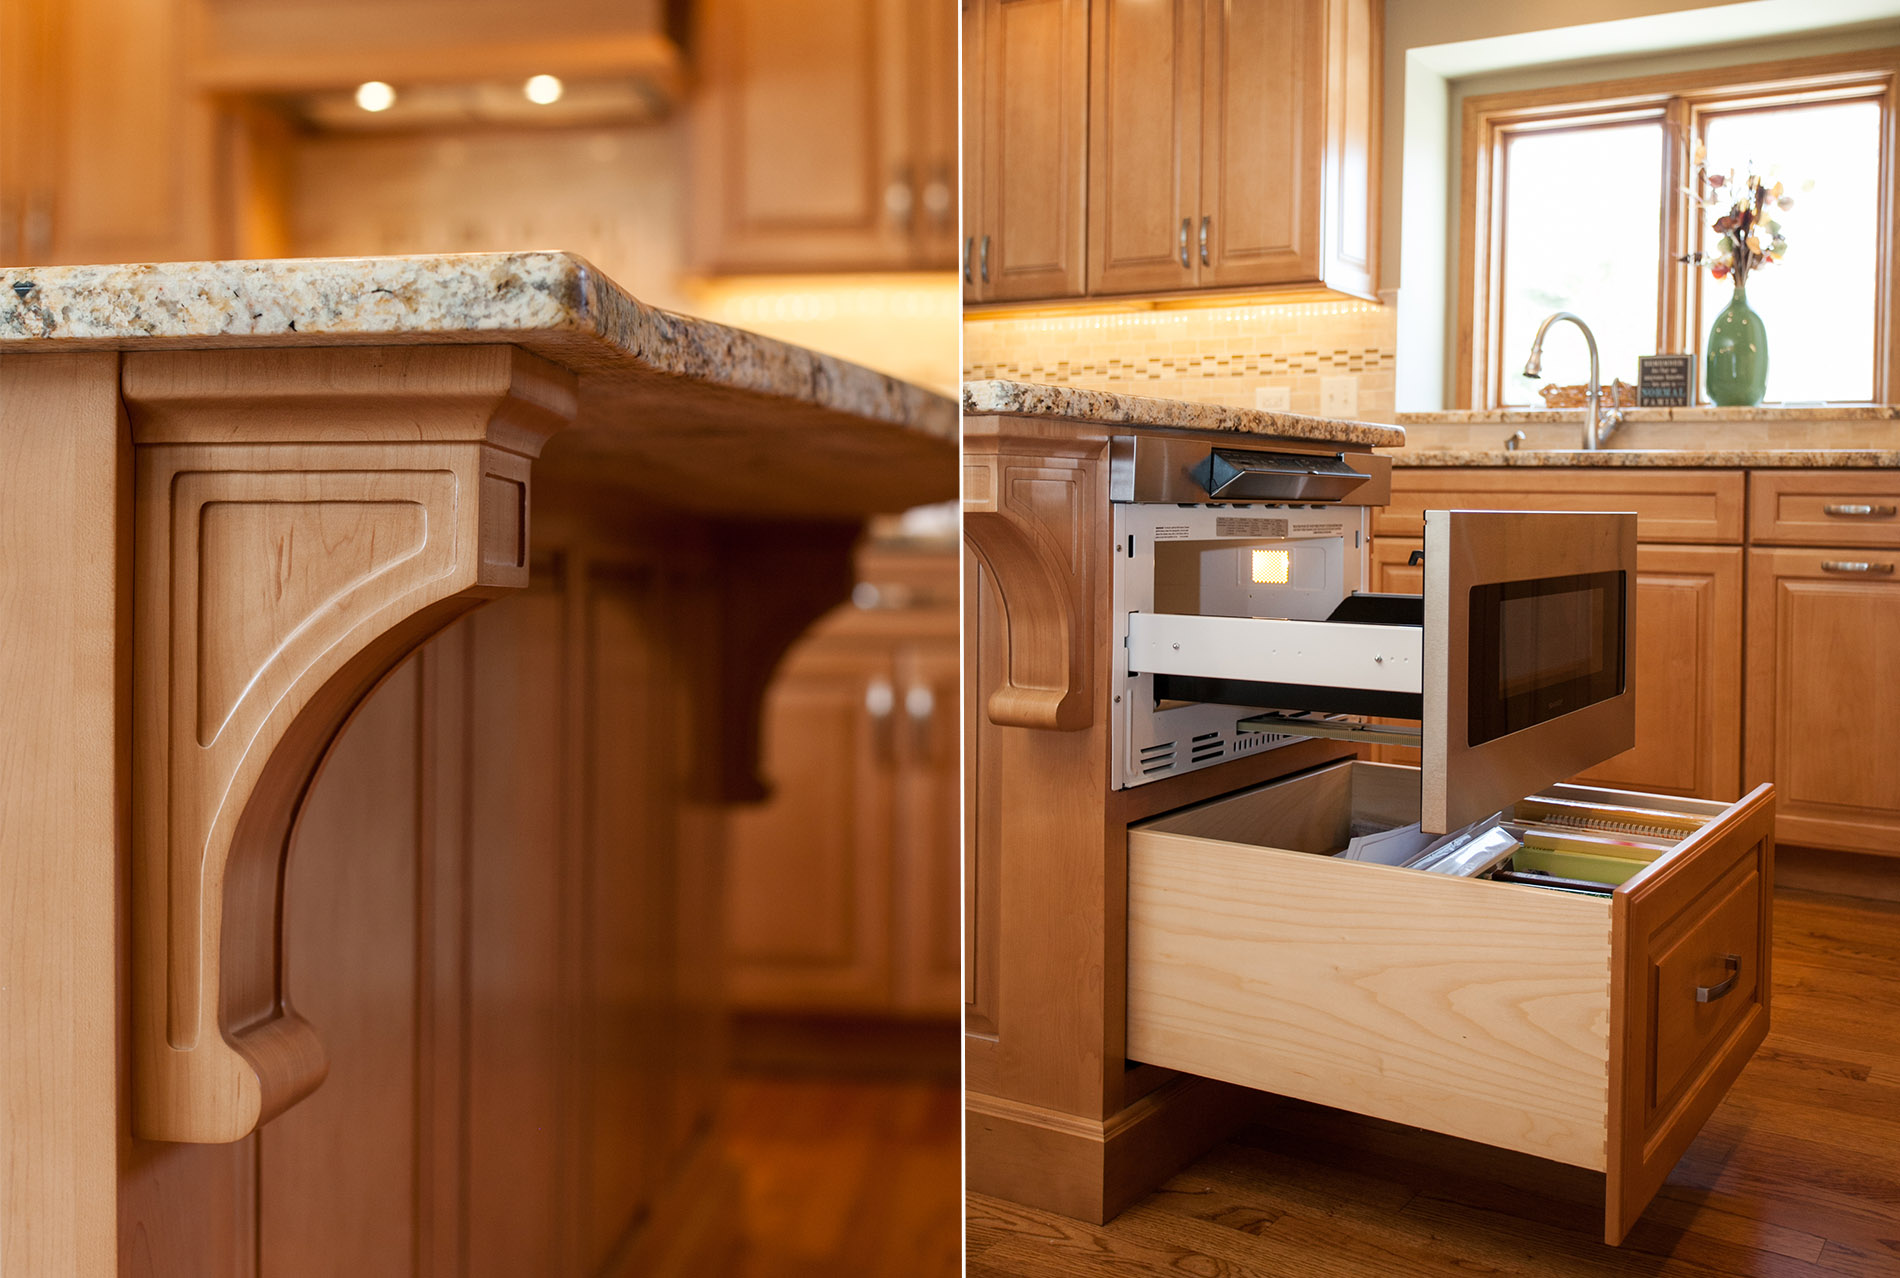 Custom Amish Cabinetry in Breckenridge Estates